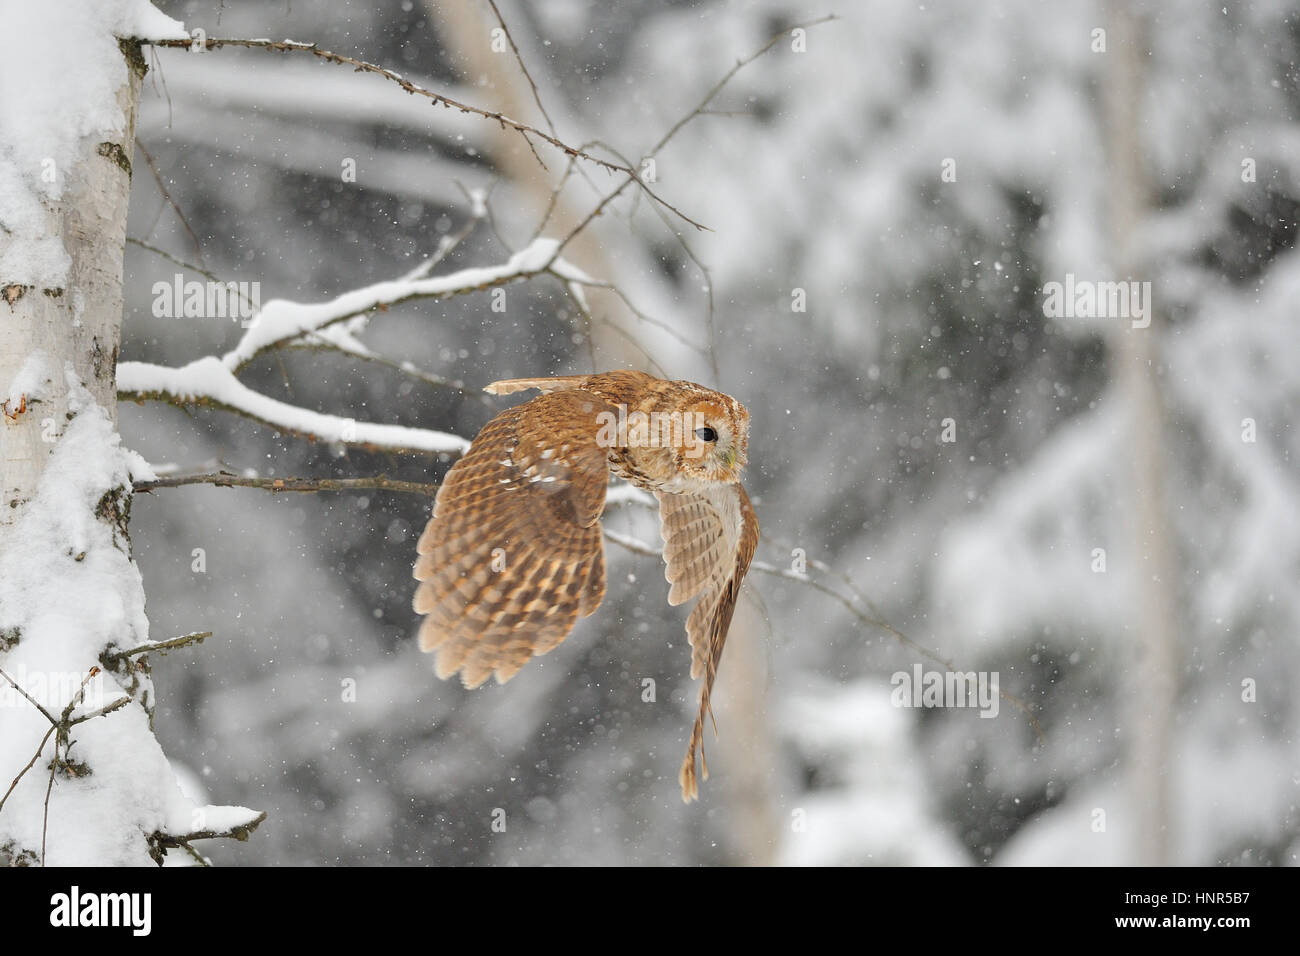 Flying tawny owl in winter time whne is snowing - Stock Image